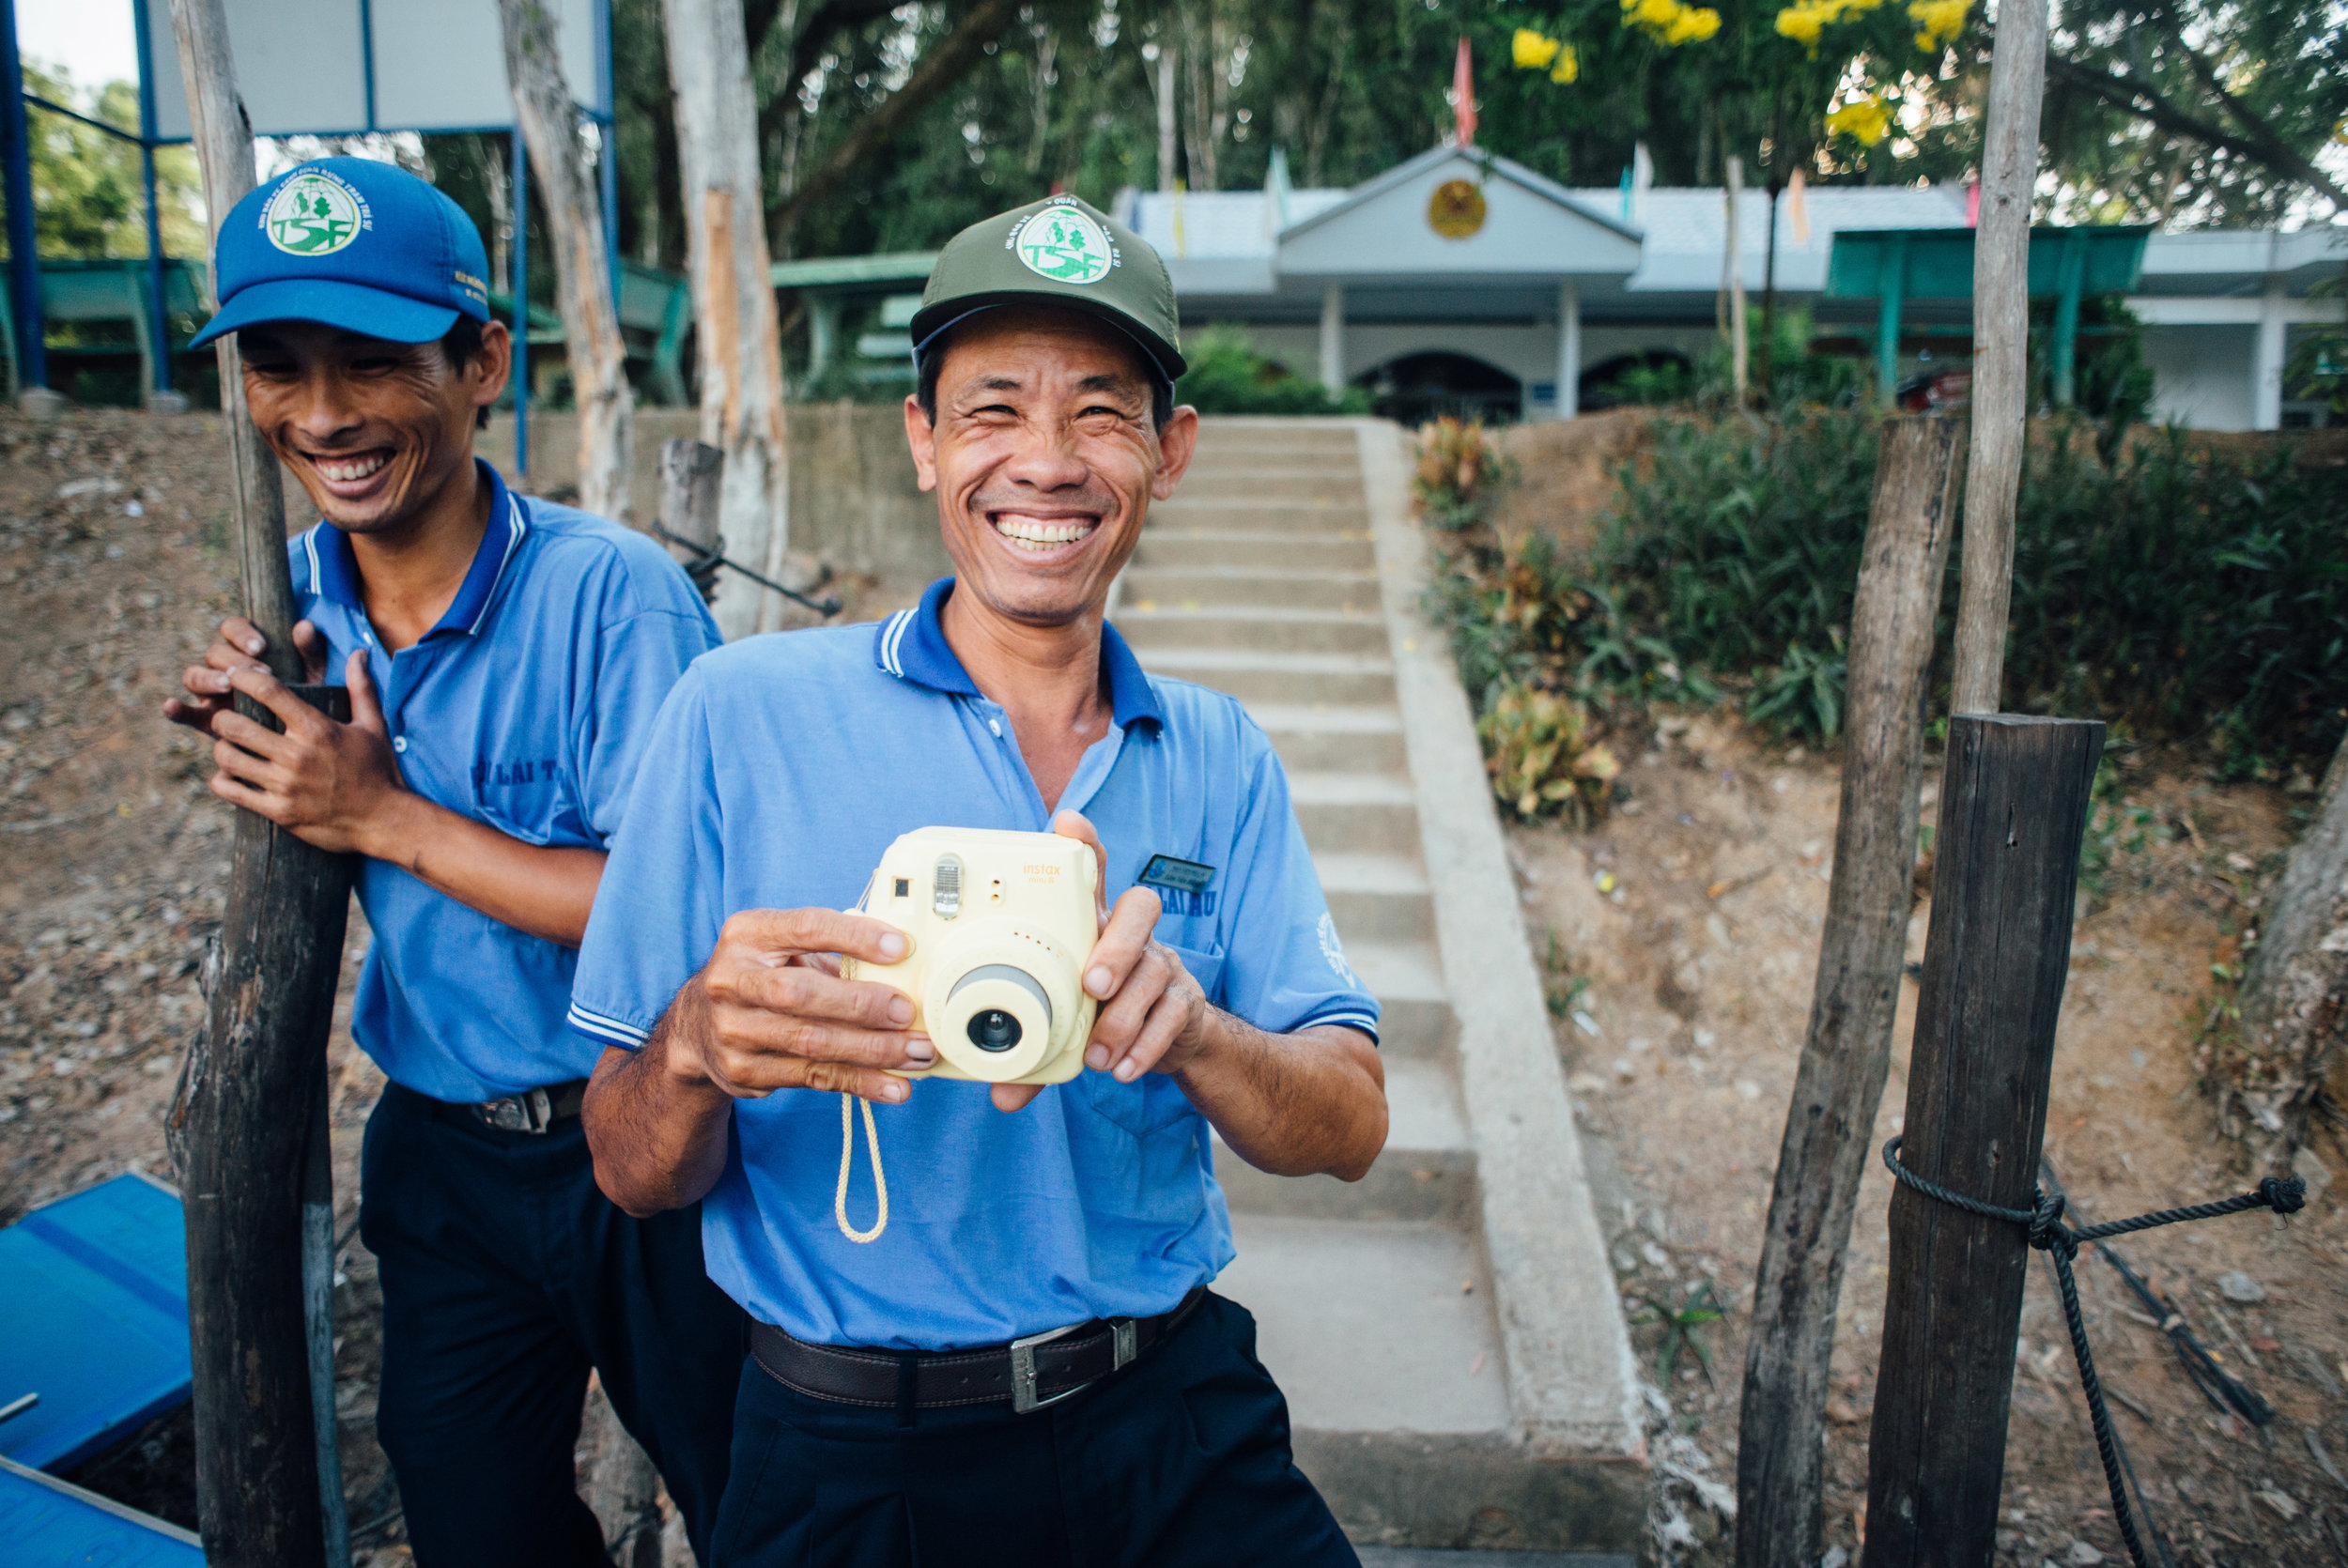 Two men play with a Polaroid camera in the An Giang Provence of Vietnam.